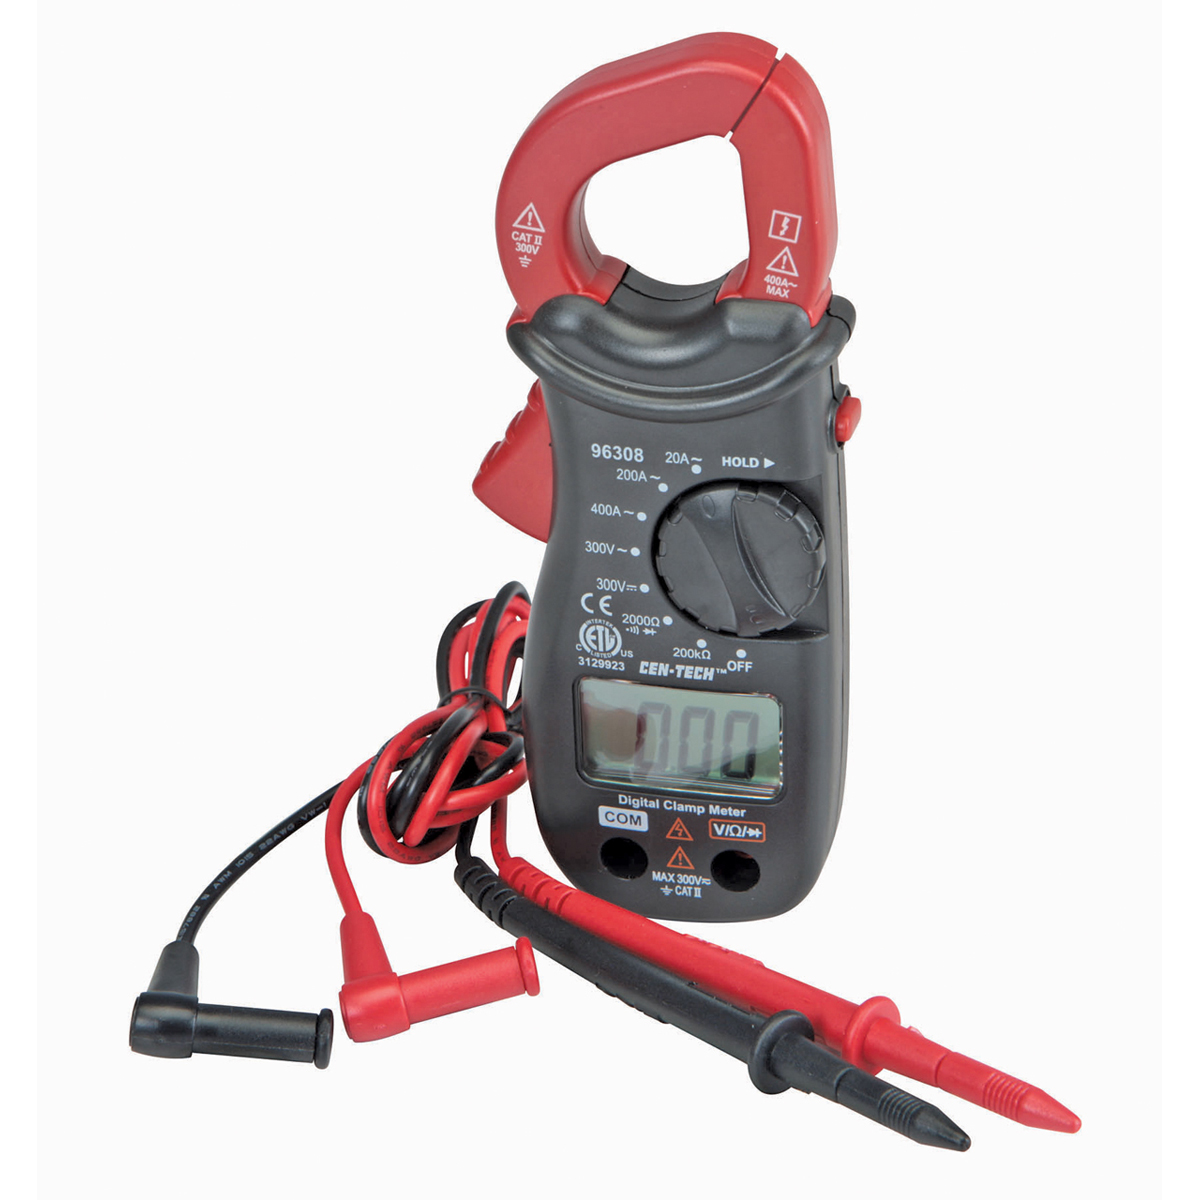 Low Amp Probe Clamp : Digital clamp meter